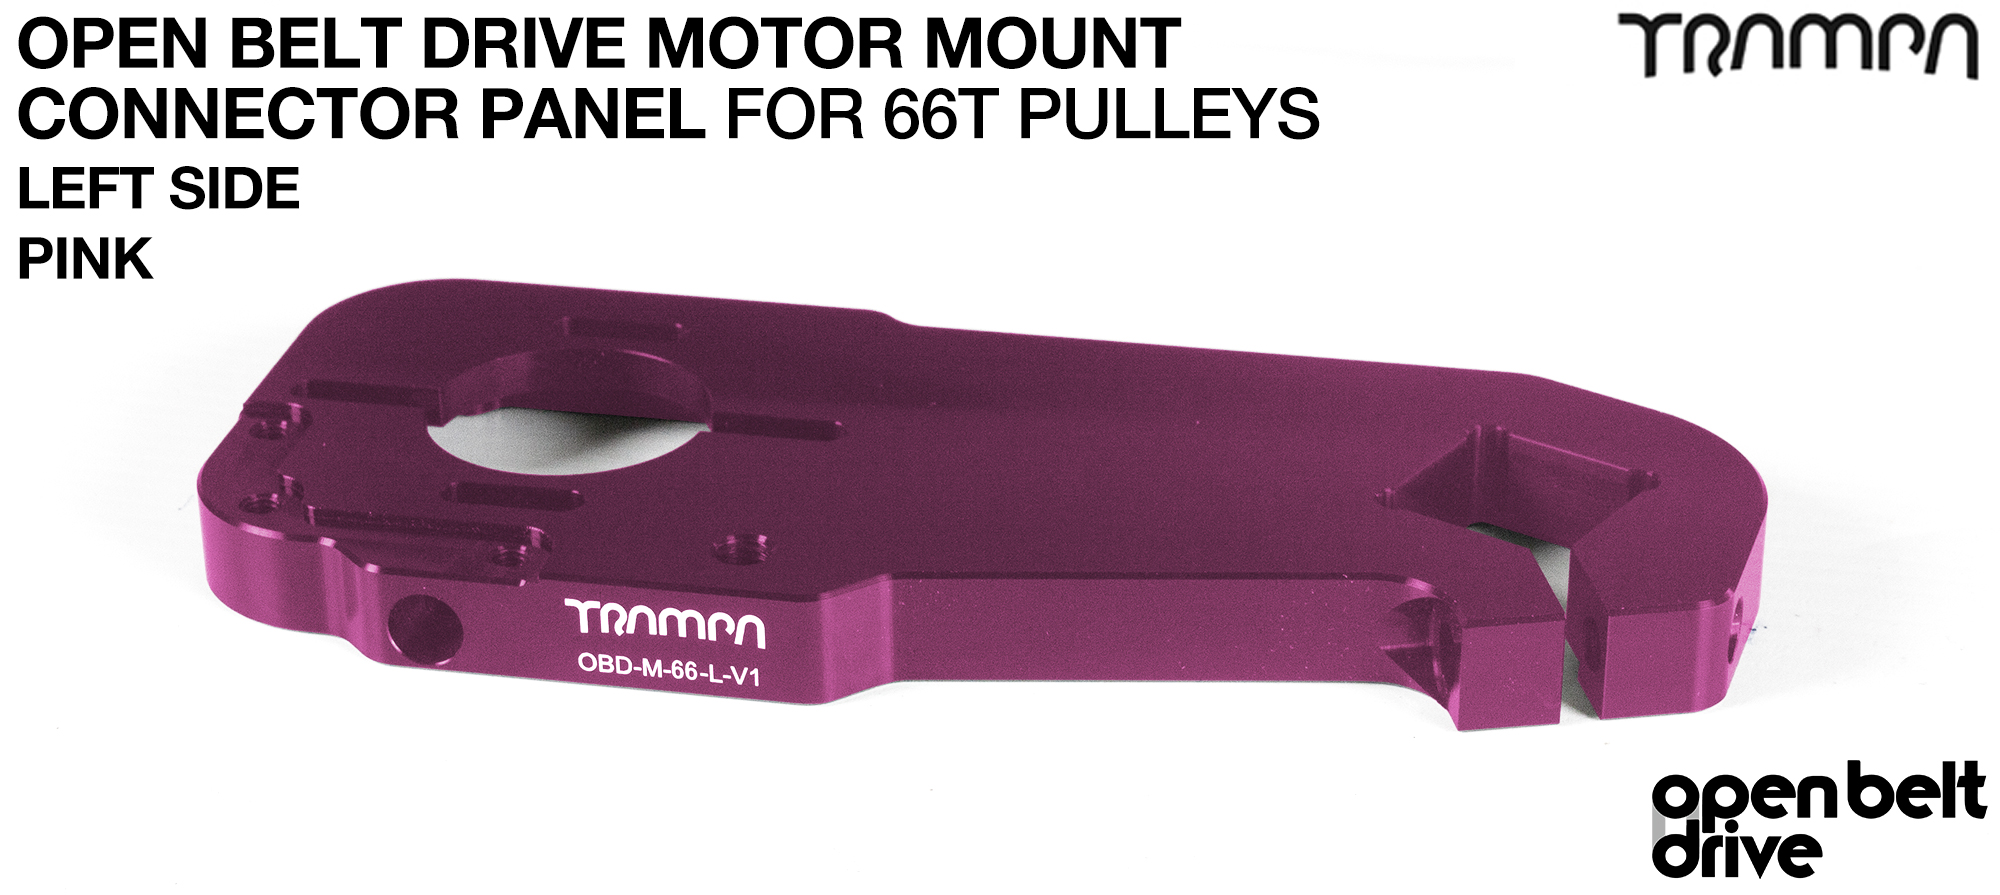 PINK 66T TWIN OBD Motor Mount Panels